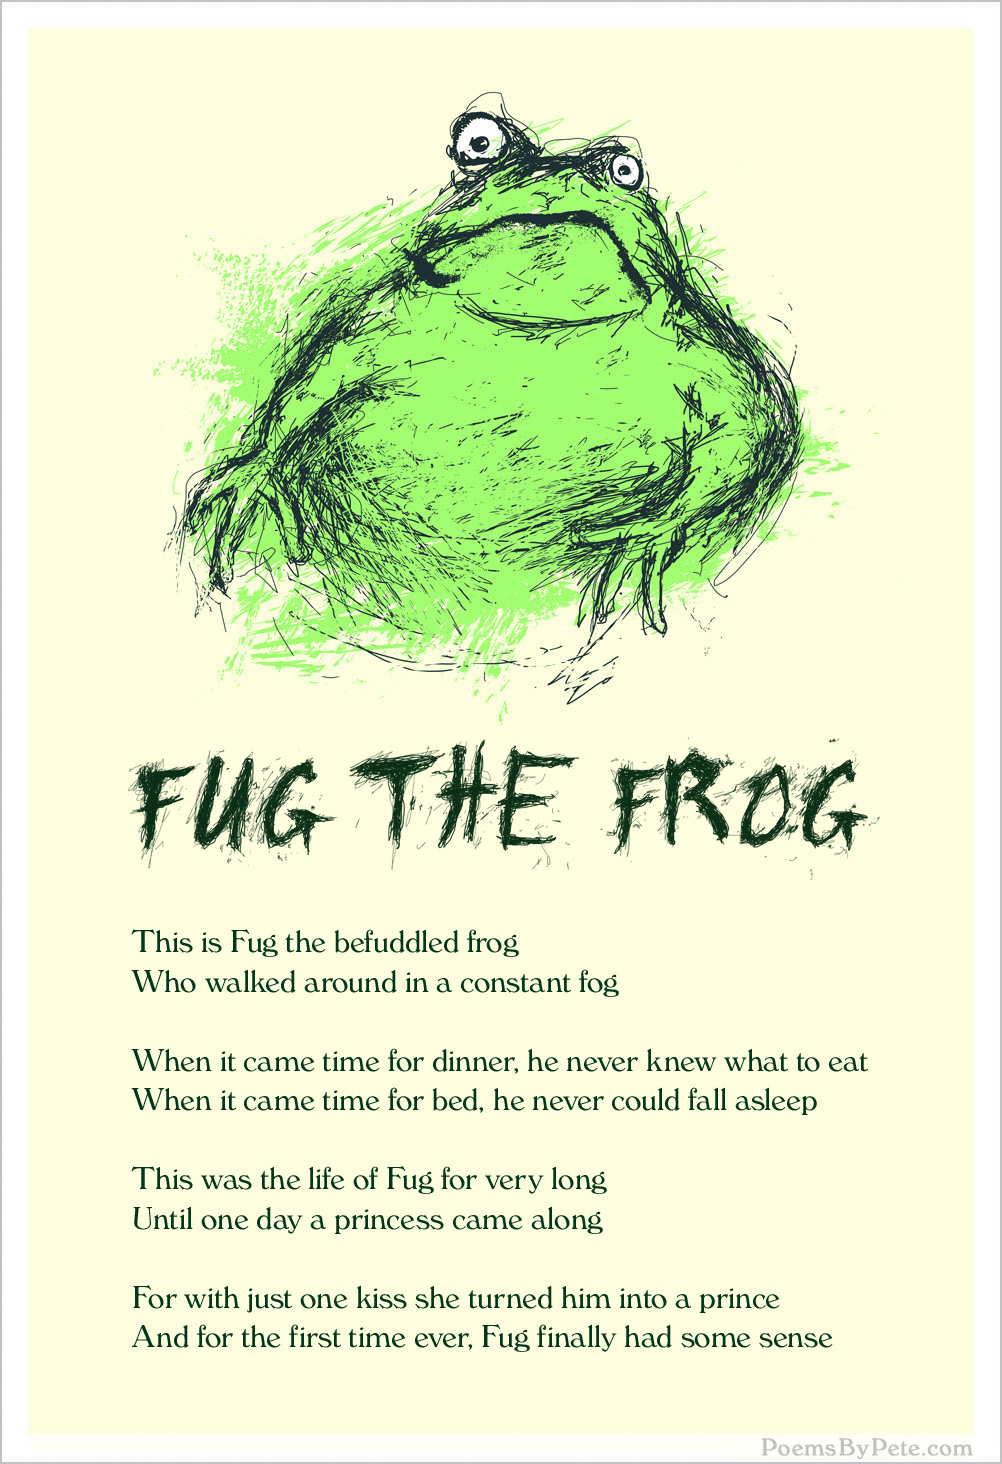 cute-frog-illustration-drawing-kids-story-childrens-book-froggy-prince-charming-fairytale-fairy-tale-kiss-funny-humor-love-poems-by-pete-poemsbypete